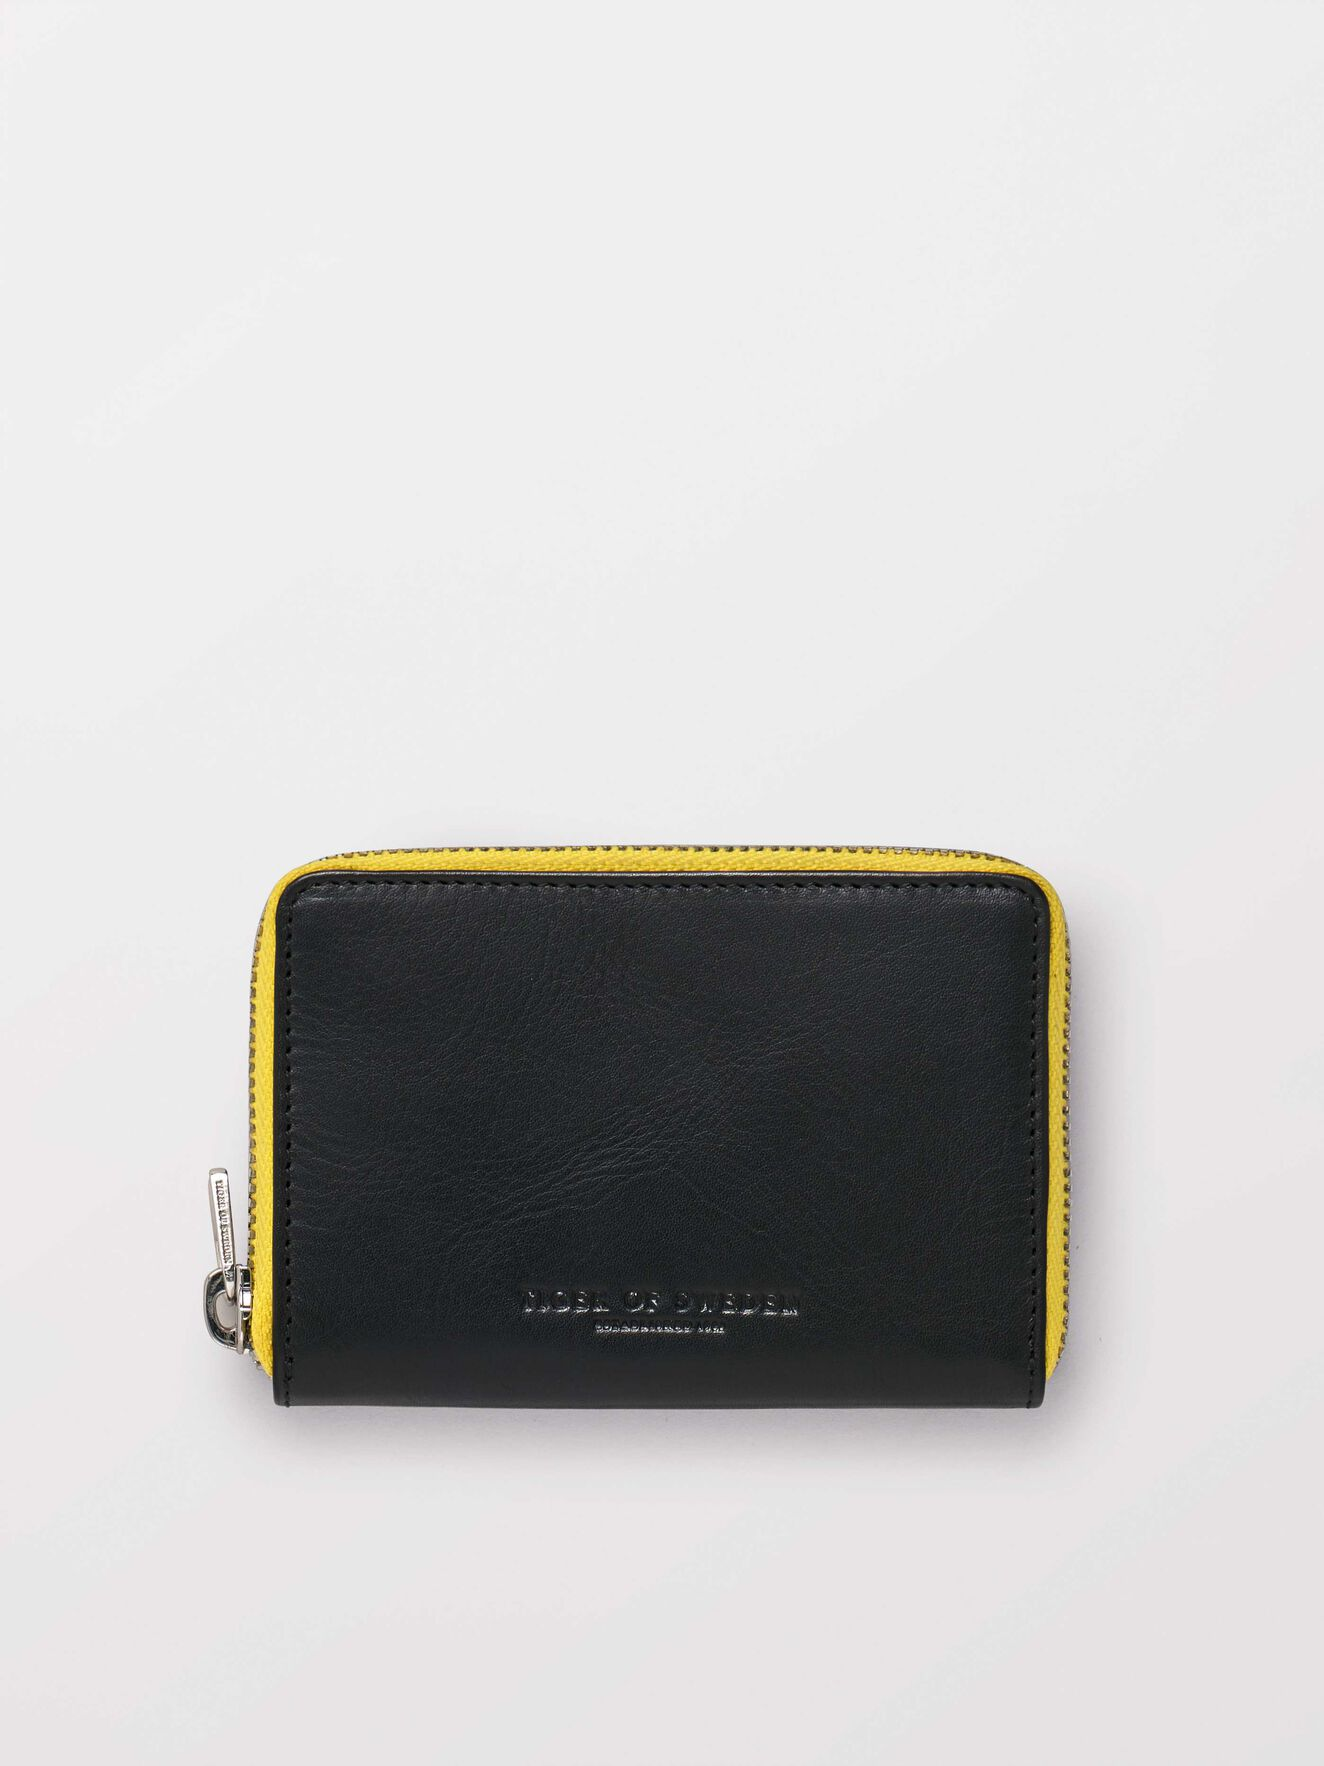 Karbin 2 Wallet in Black from Tiger of Sweden